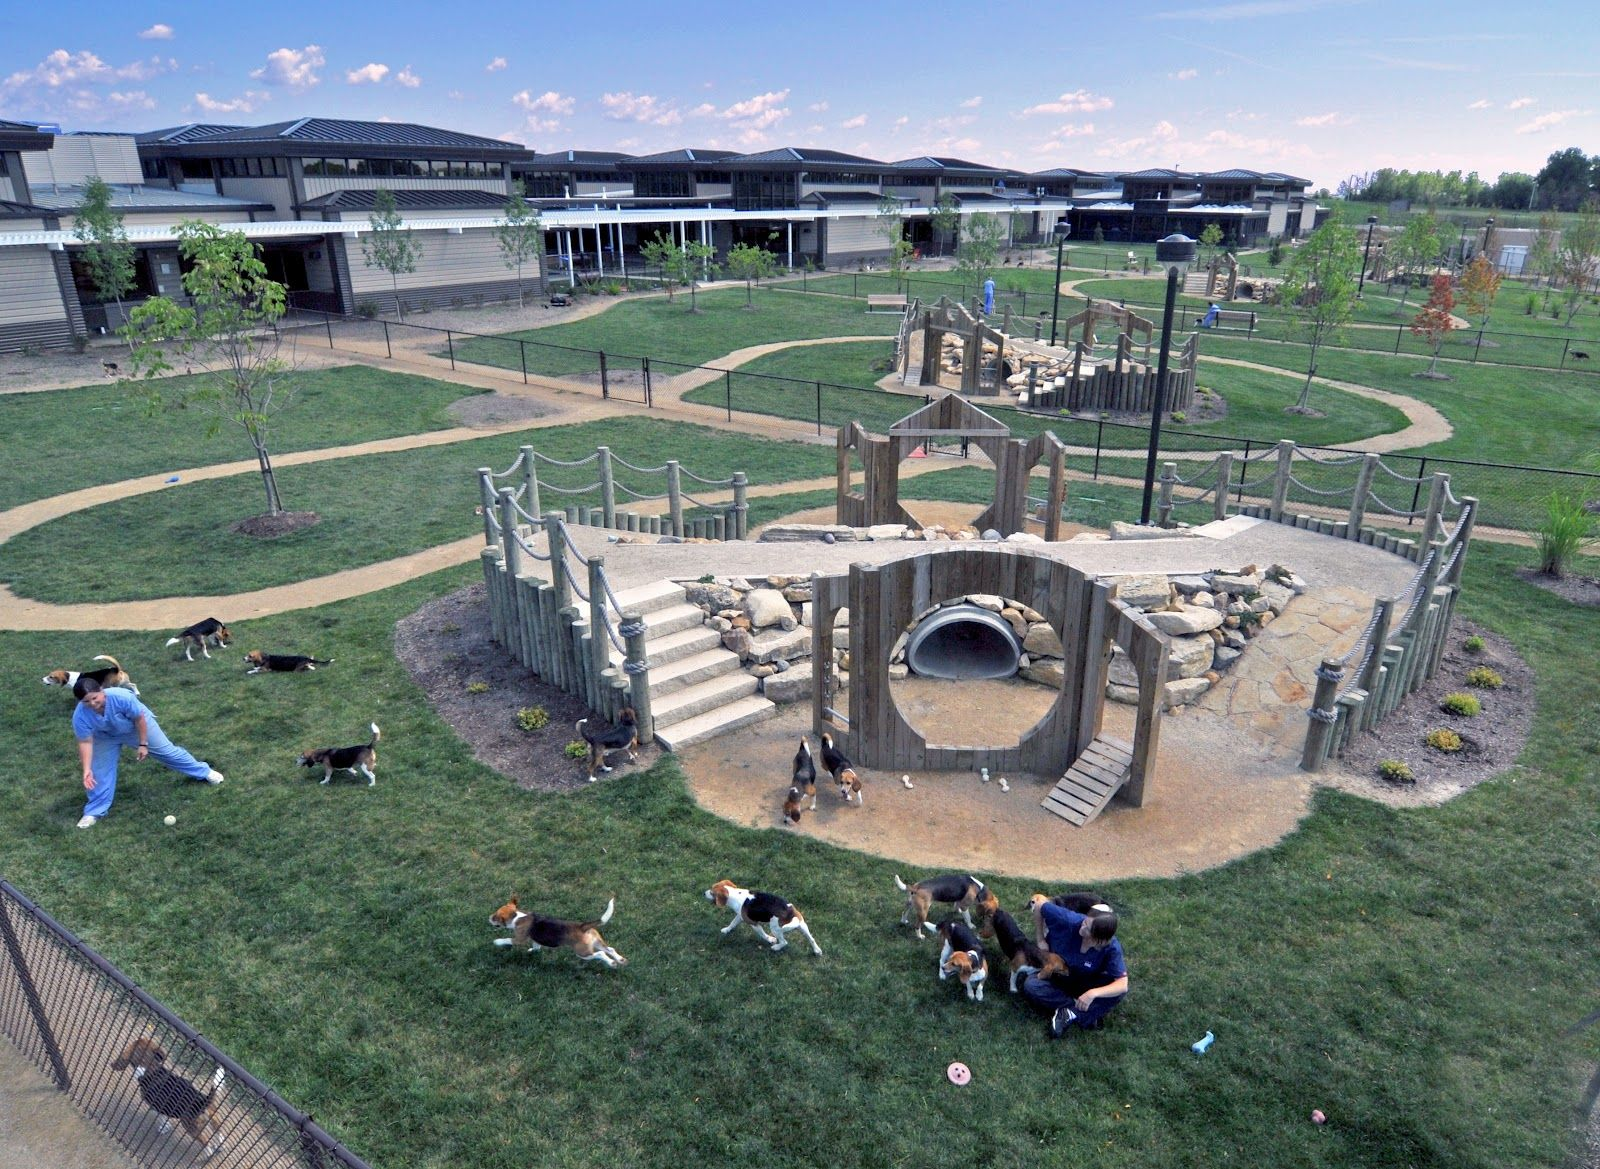 Dog Play Area Ideas Dogs Looked Happy And Healthy Too With Multiple Dog Park Play Areas Dog Playground Indoor Dog Park Dog Park